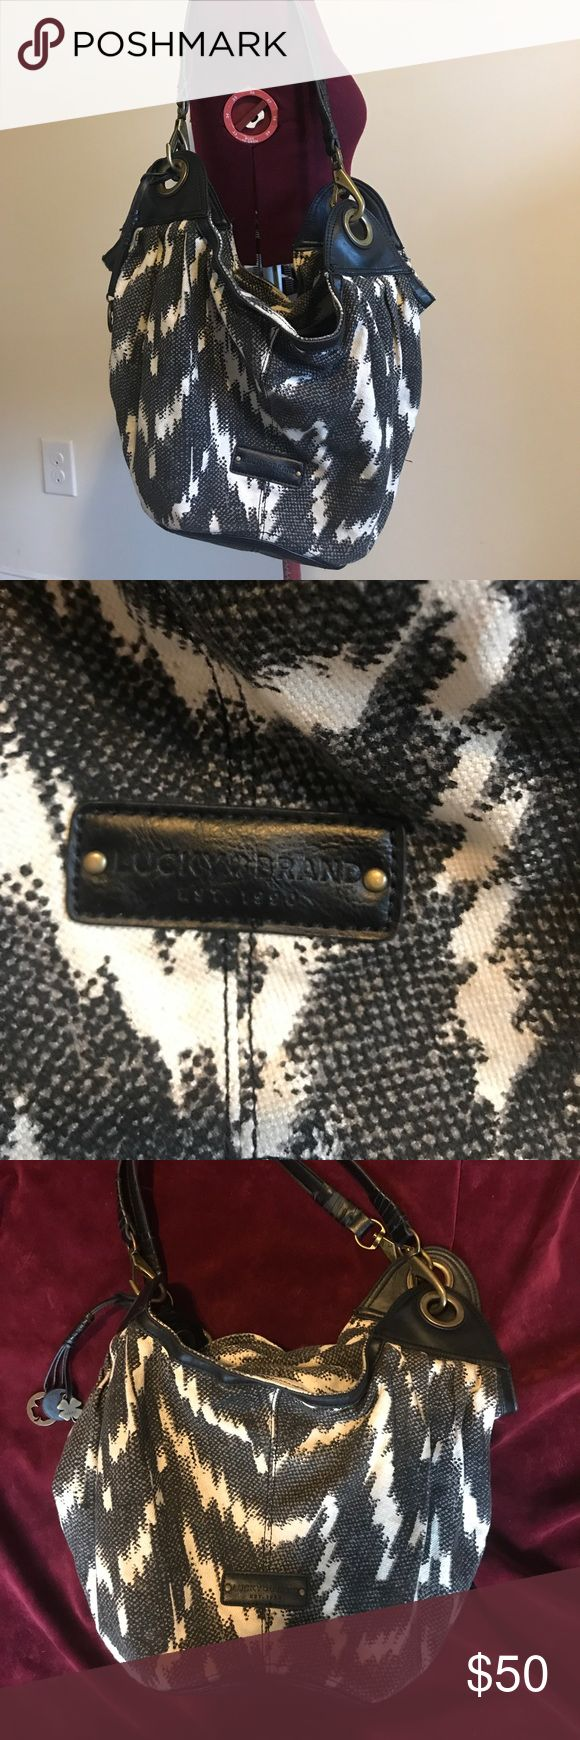 Lucky Brand Purse Lucky Brand Purse. Preowned in good condition. The outside has no major wear snag or stains. The inside has some small stains but still in good condition. Lucky Brand Bags Shoulder Bags